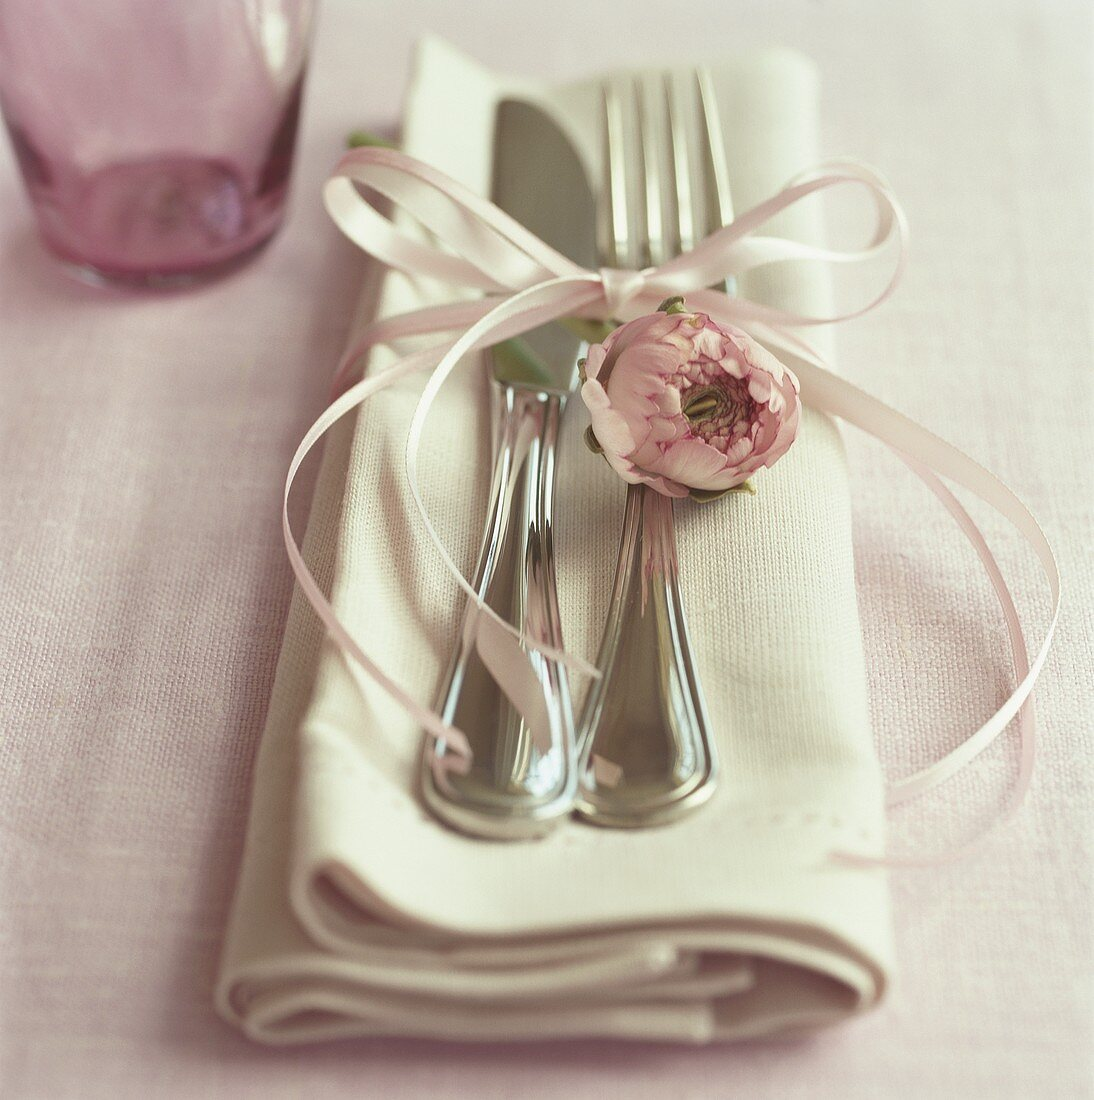 Silver cutlery with bow and pink flower on fabric napkin